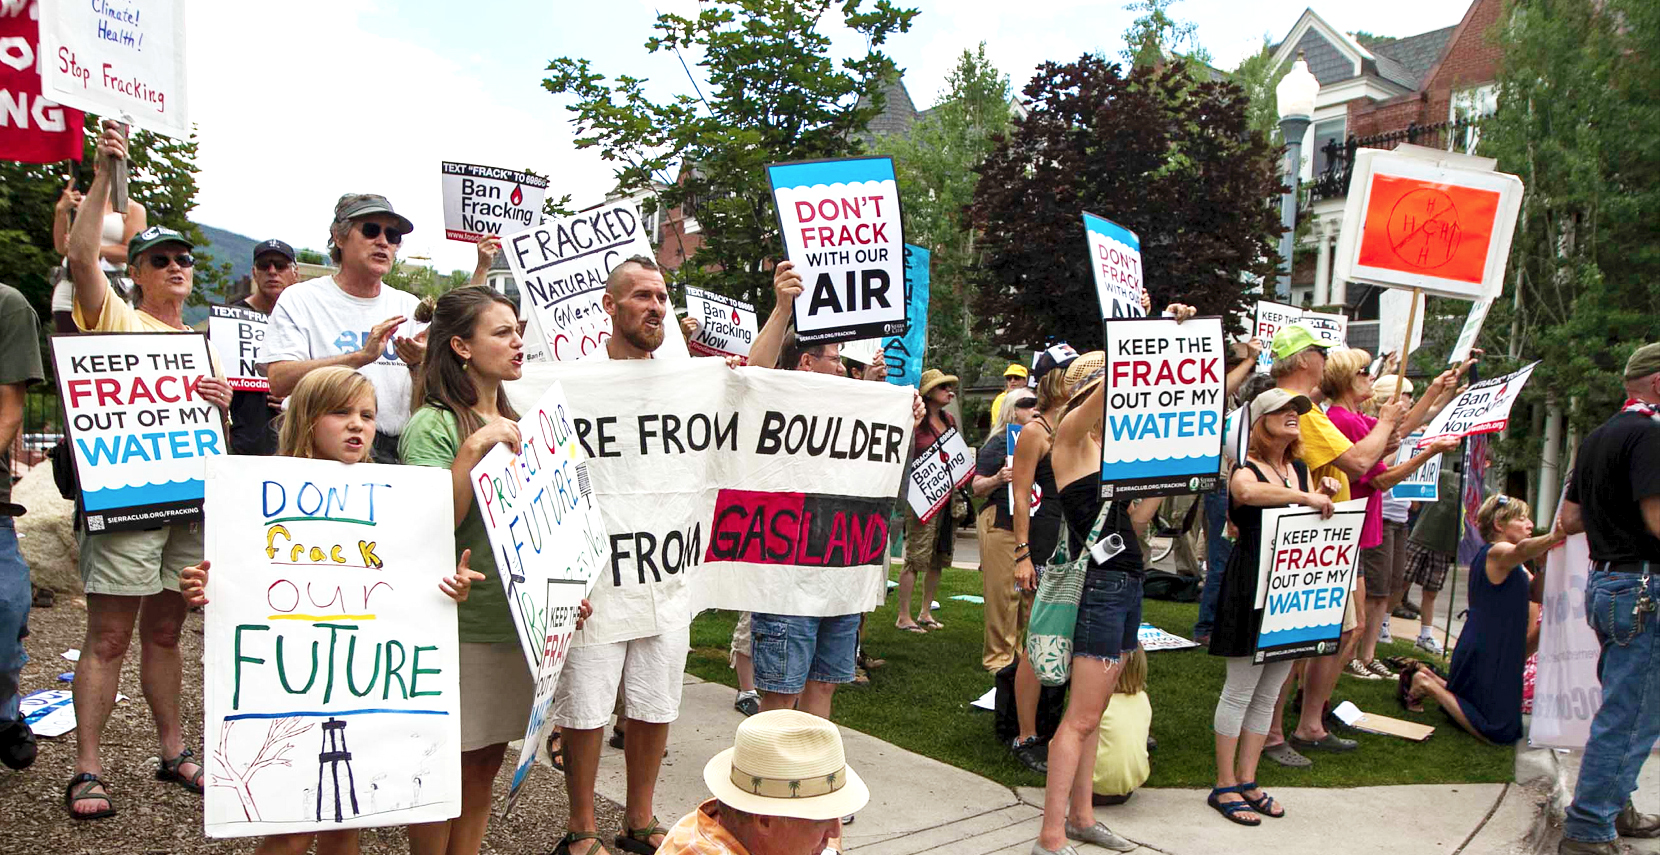 Anti-fracking protest in Boulder (image via Ecowatch)